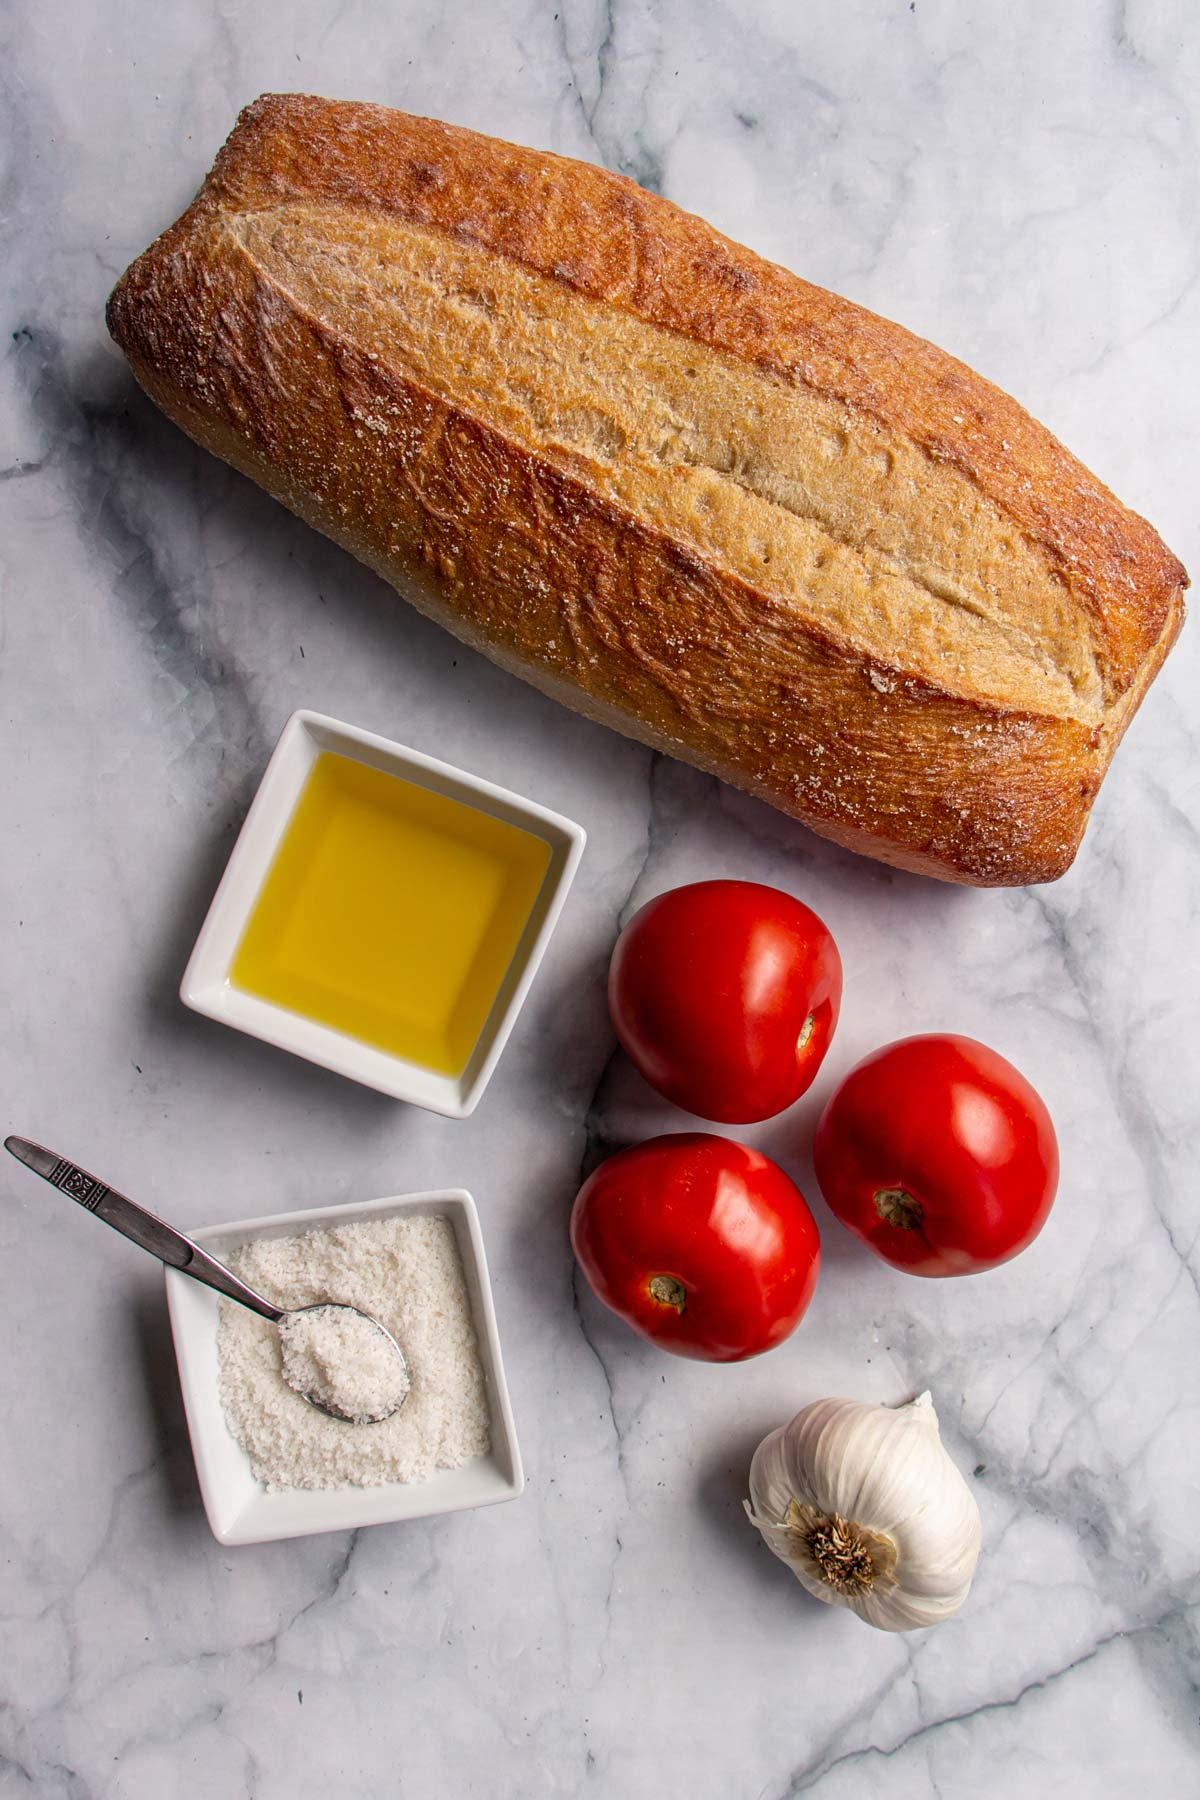 Ingredients for pan con tomate on a white marble surface.